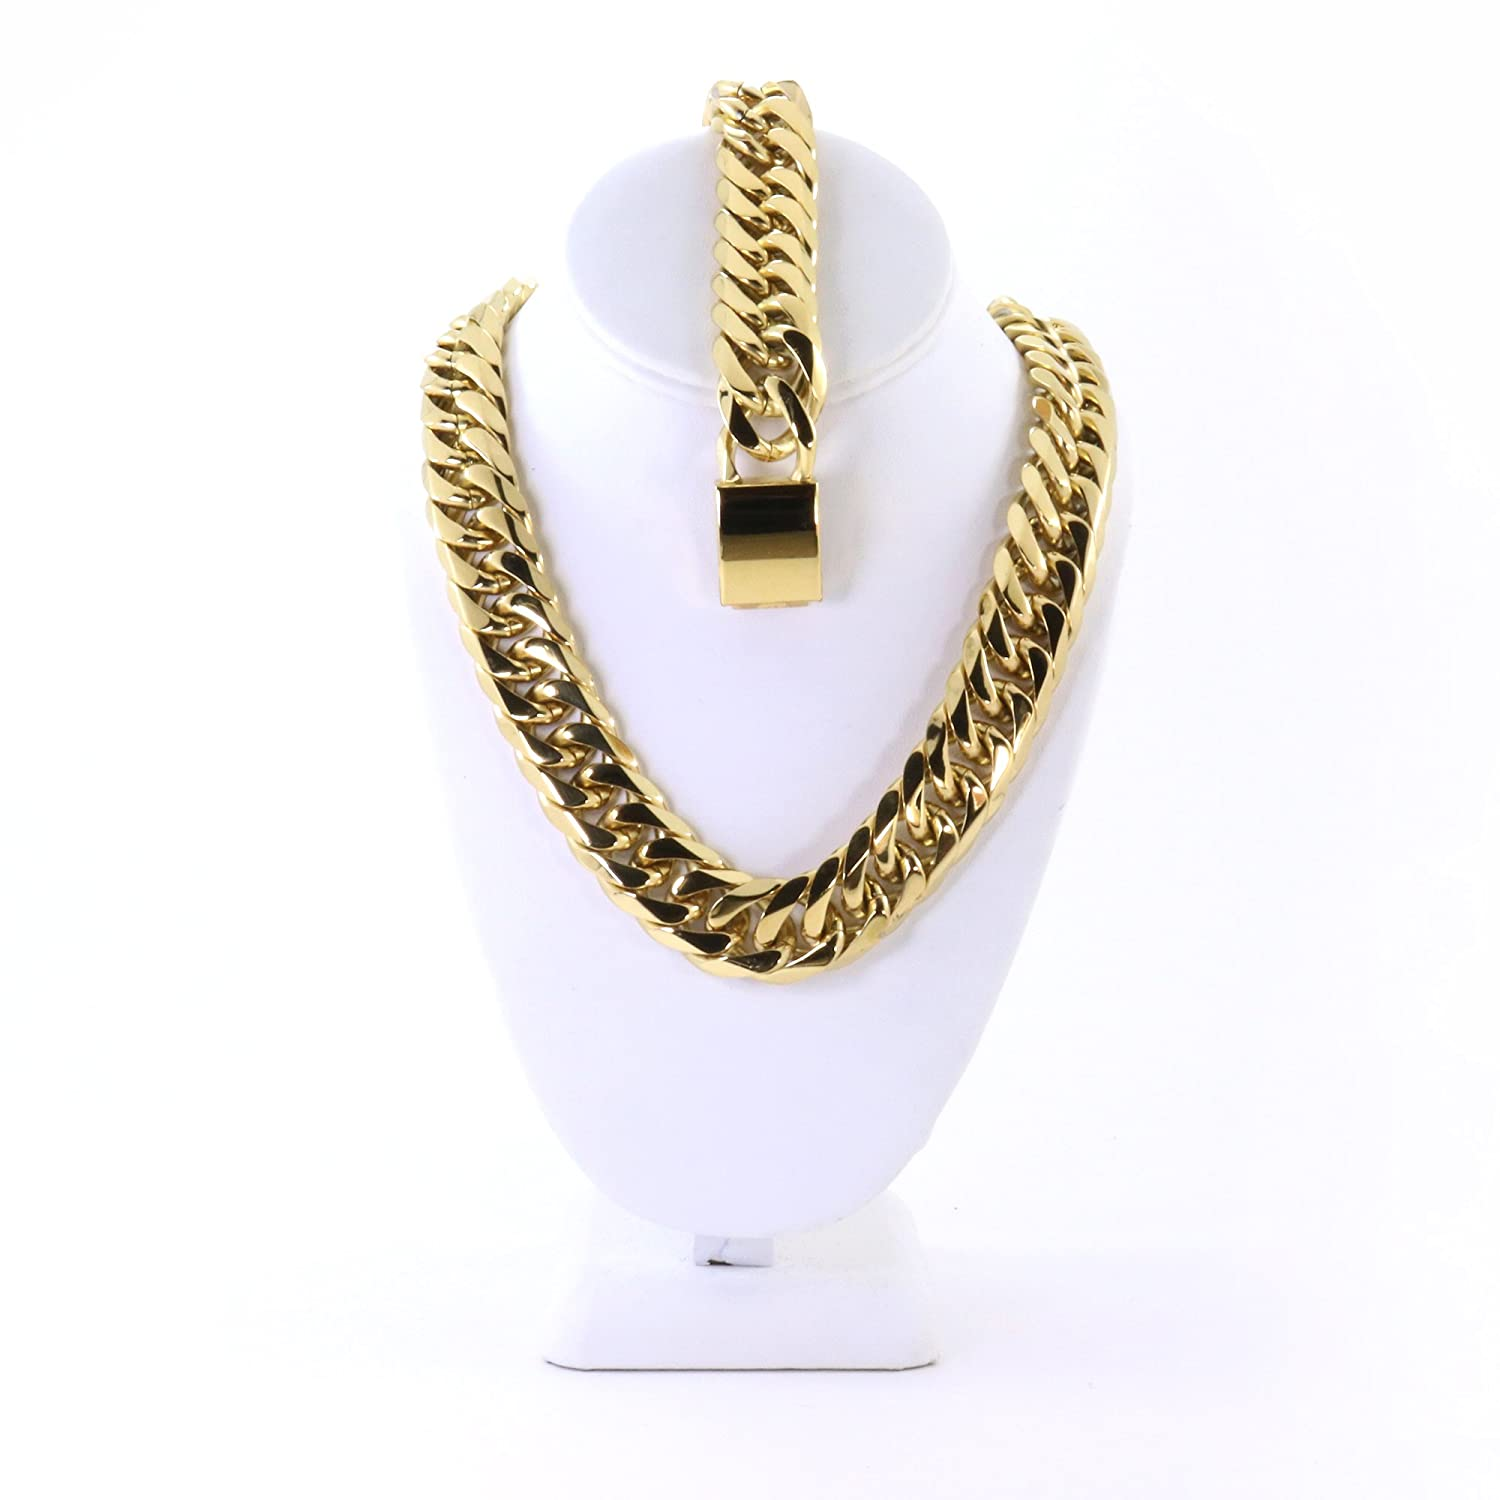 Solid 14k Yellow Gold Finish Stainless Steel 21mm Thick Miami Cuban Link Chain Necklace And Bracelet Set 36''